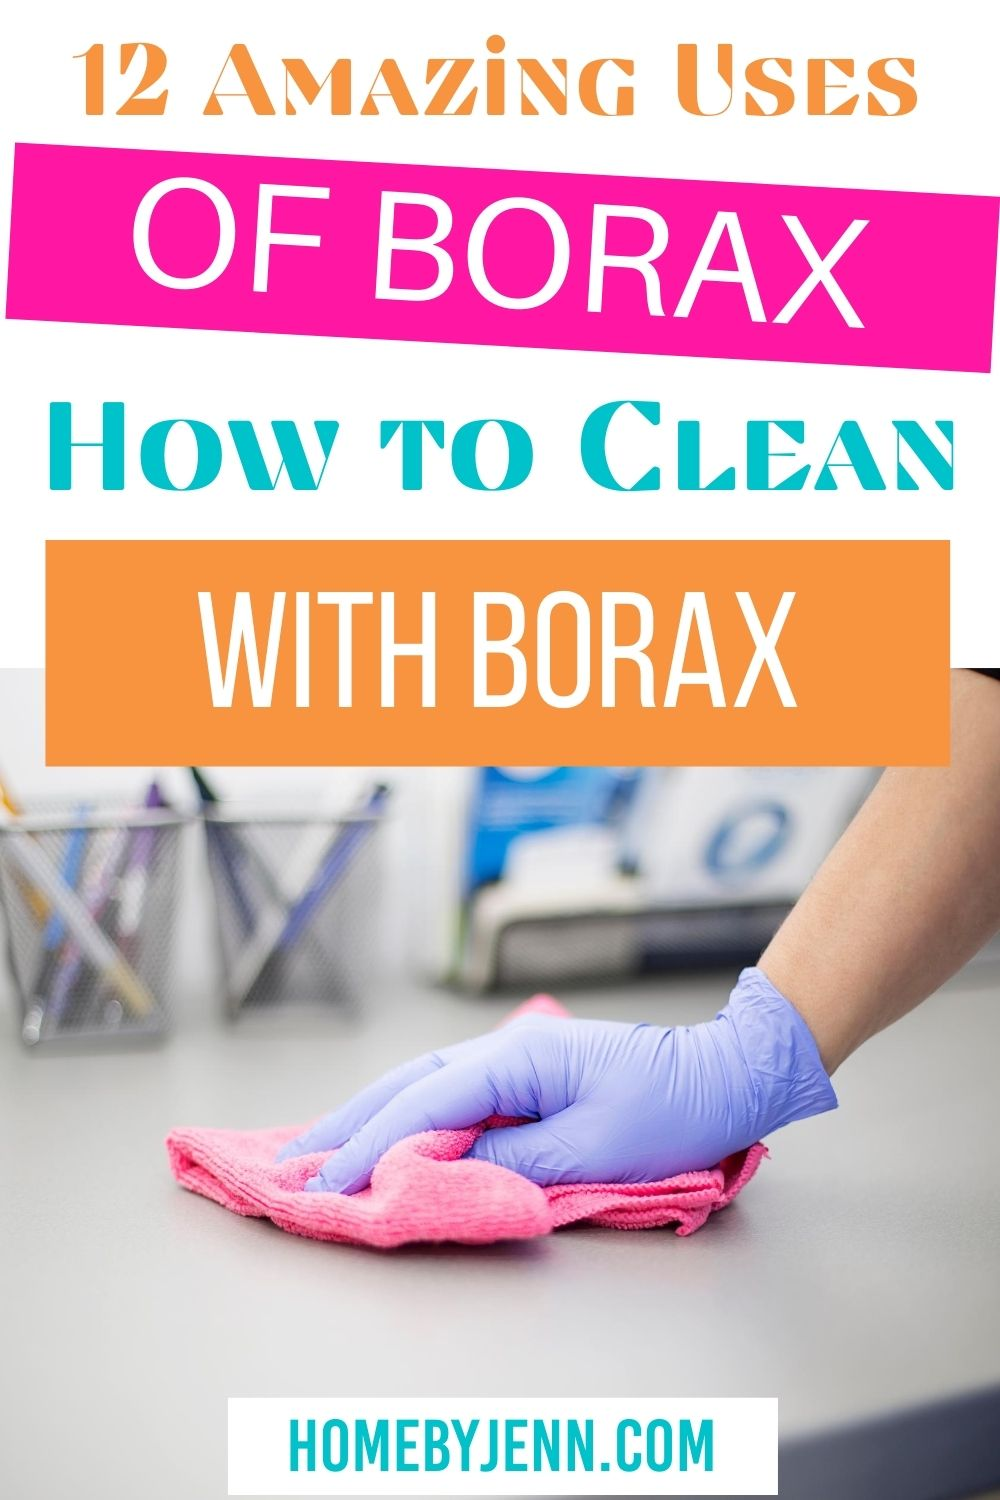 There are so many uses of borax. Today I'm going to share how to clean with borax and how you can use borax around the house. via @homebyjenn